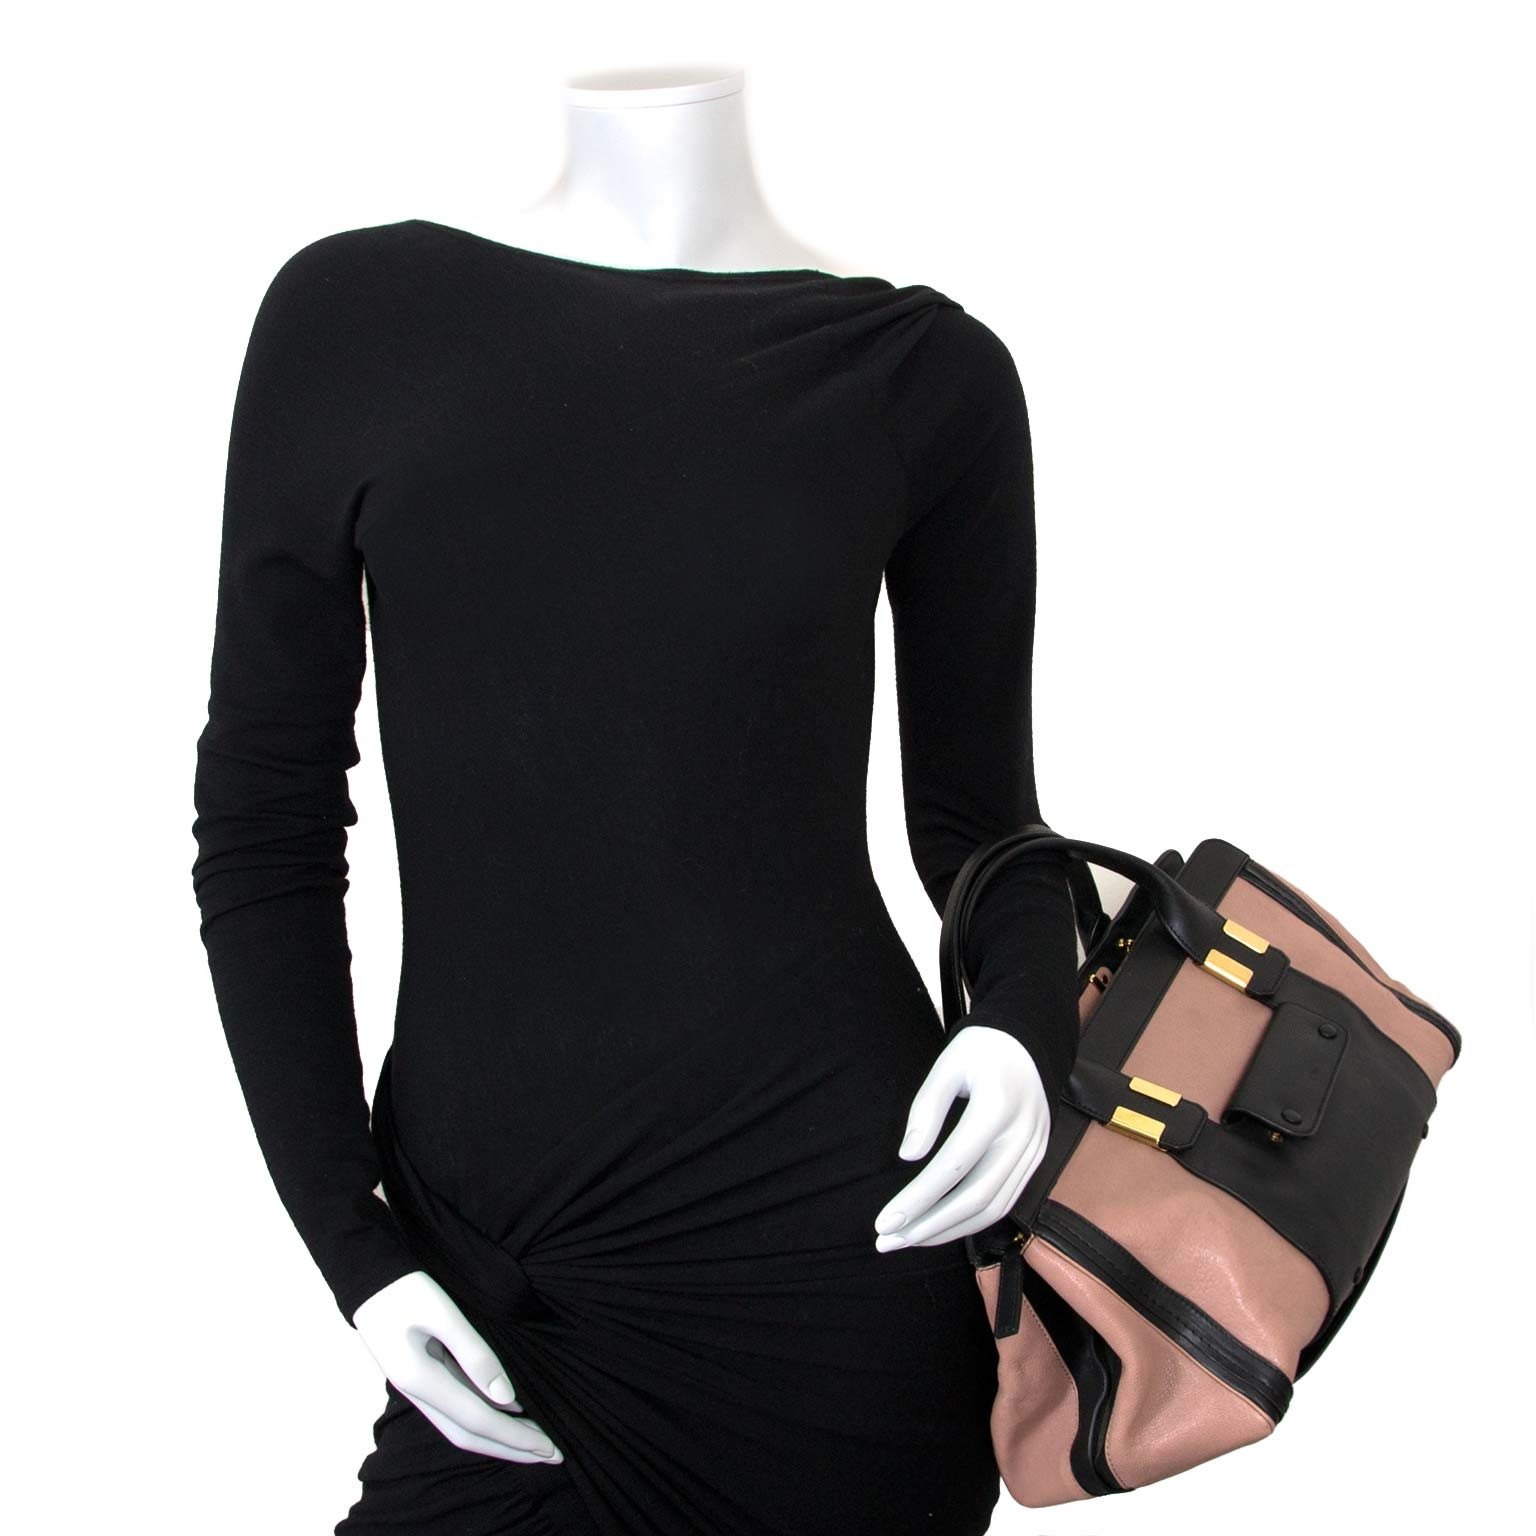 chloé black and pink alice bag now for sale at labellov vintage fashion webshop belgium